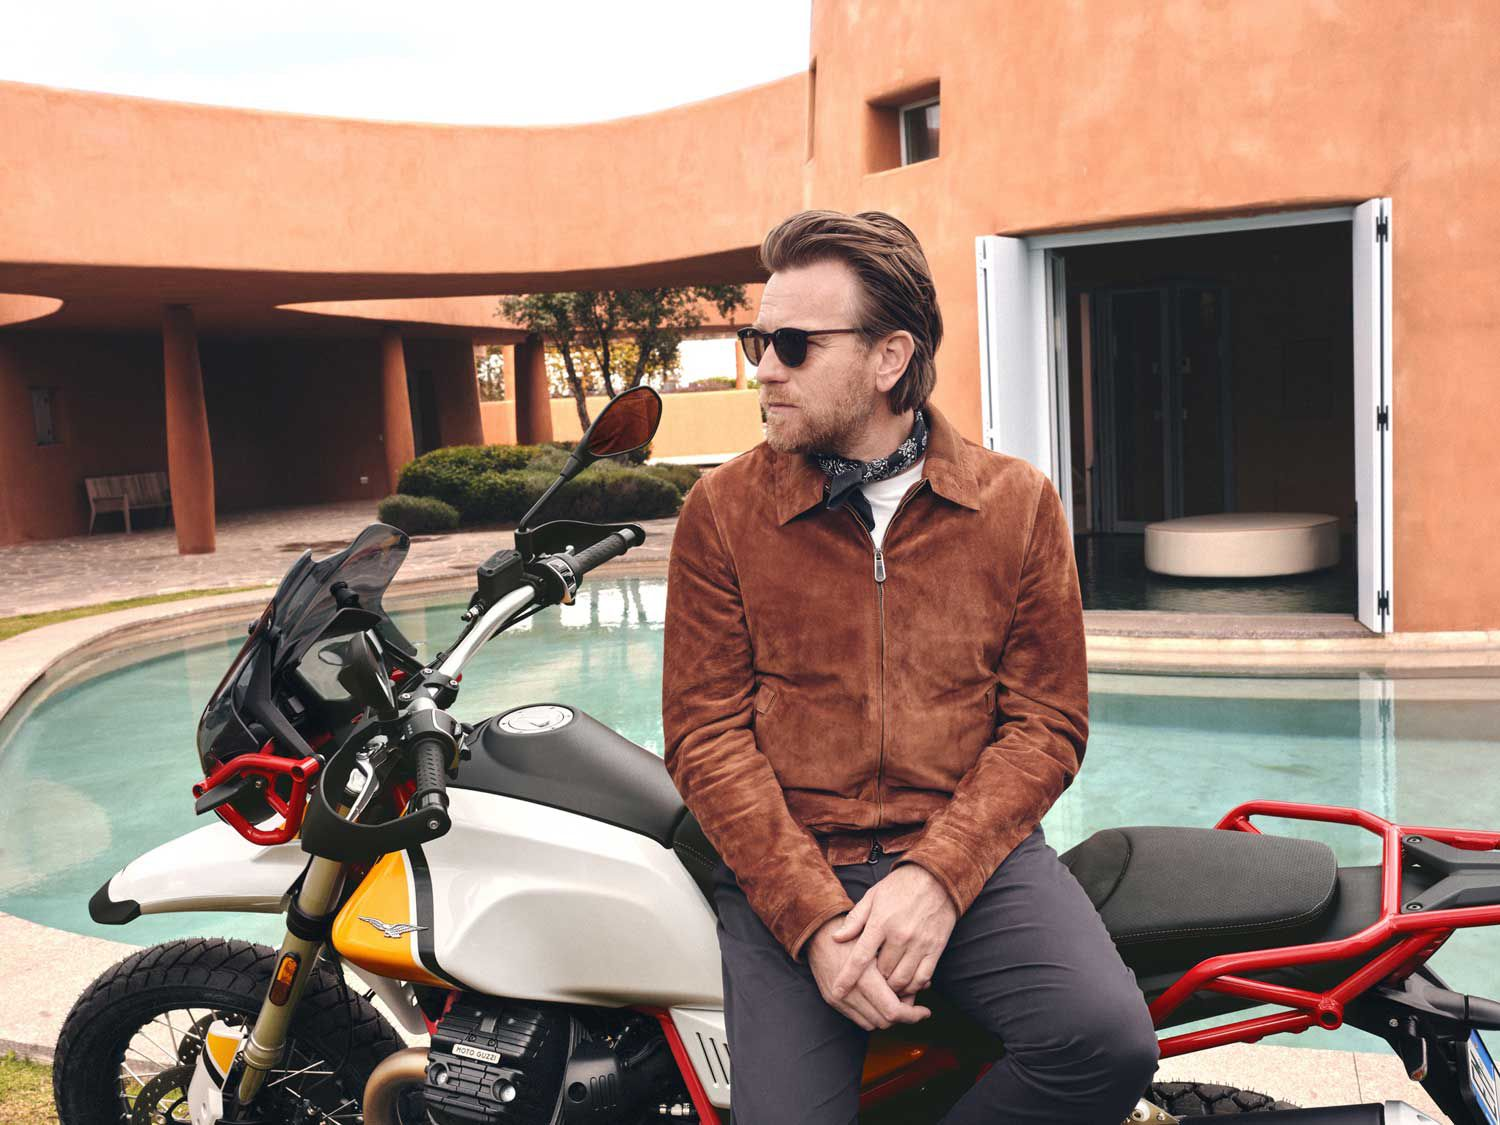 Did you know some of your favorite celebrities can ride motorcycles? Here are shots of them and others who perhaps you didn't realize enjoy the two-wheeled life like the rest of us.